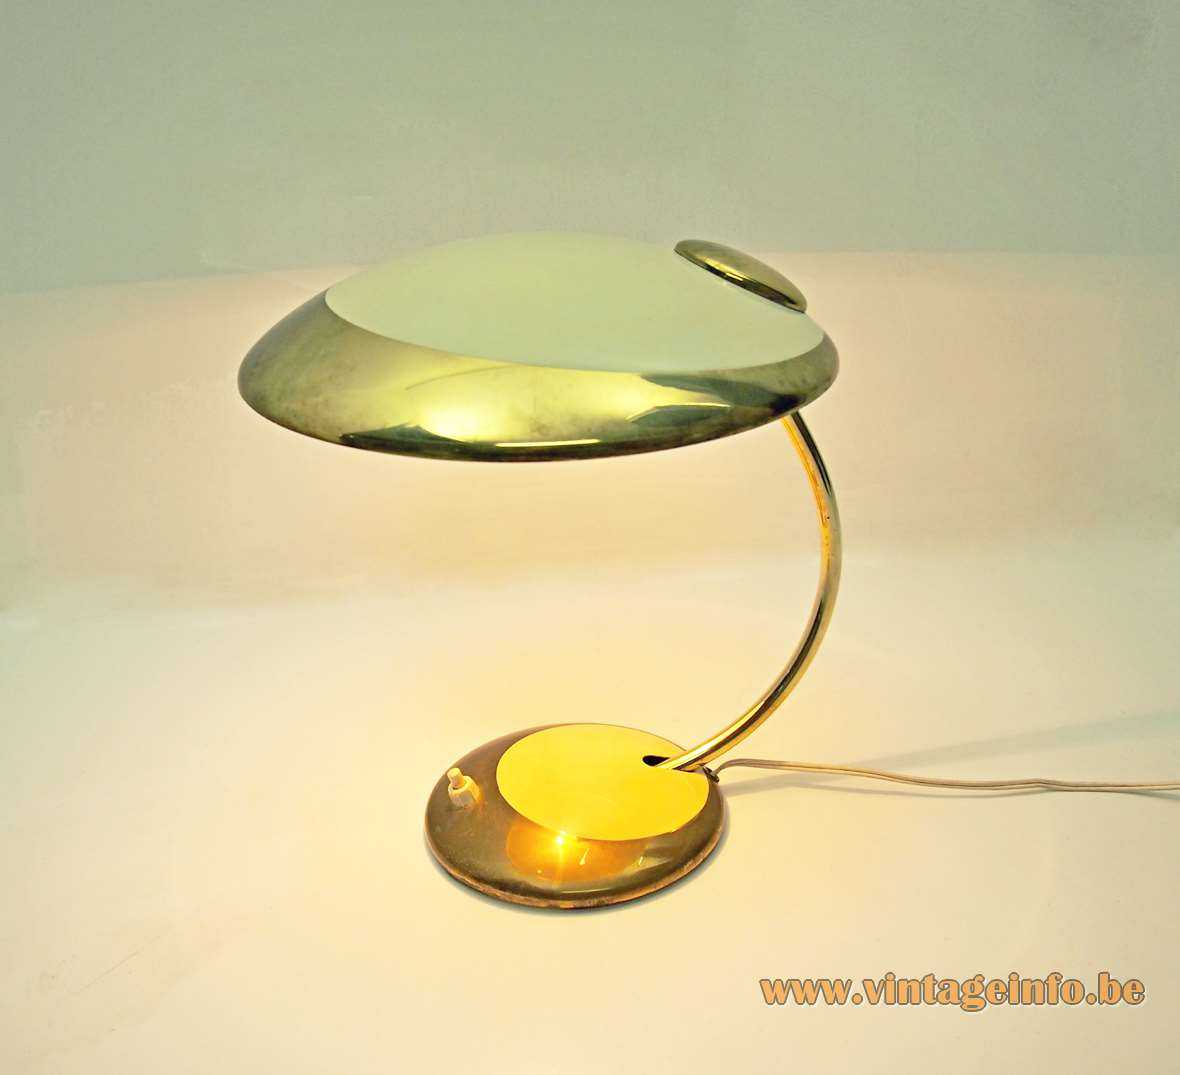 Leuchten Bilder Helo Leuchten Desk Lamp –vintageinfo – All About Vintage Lighting